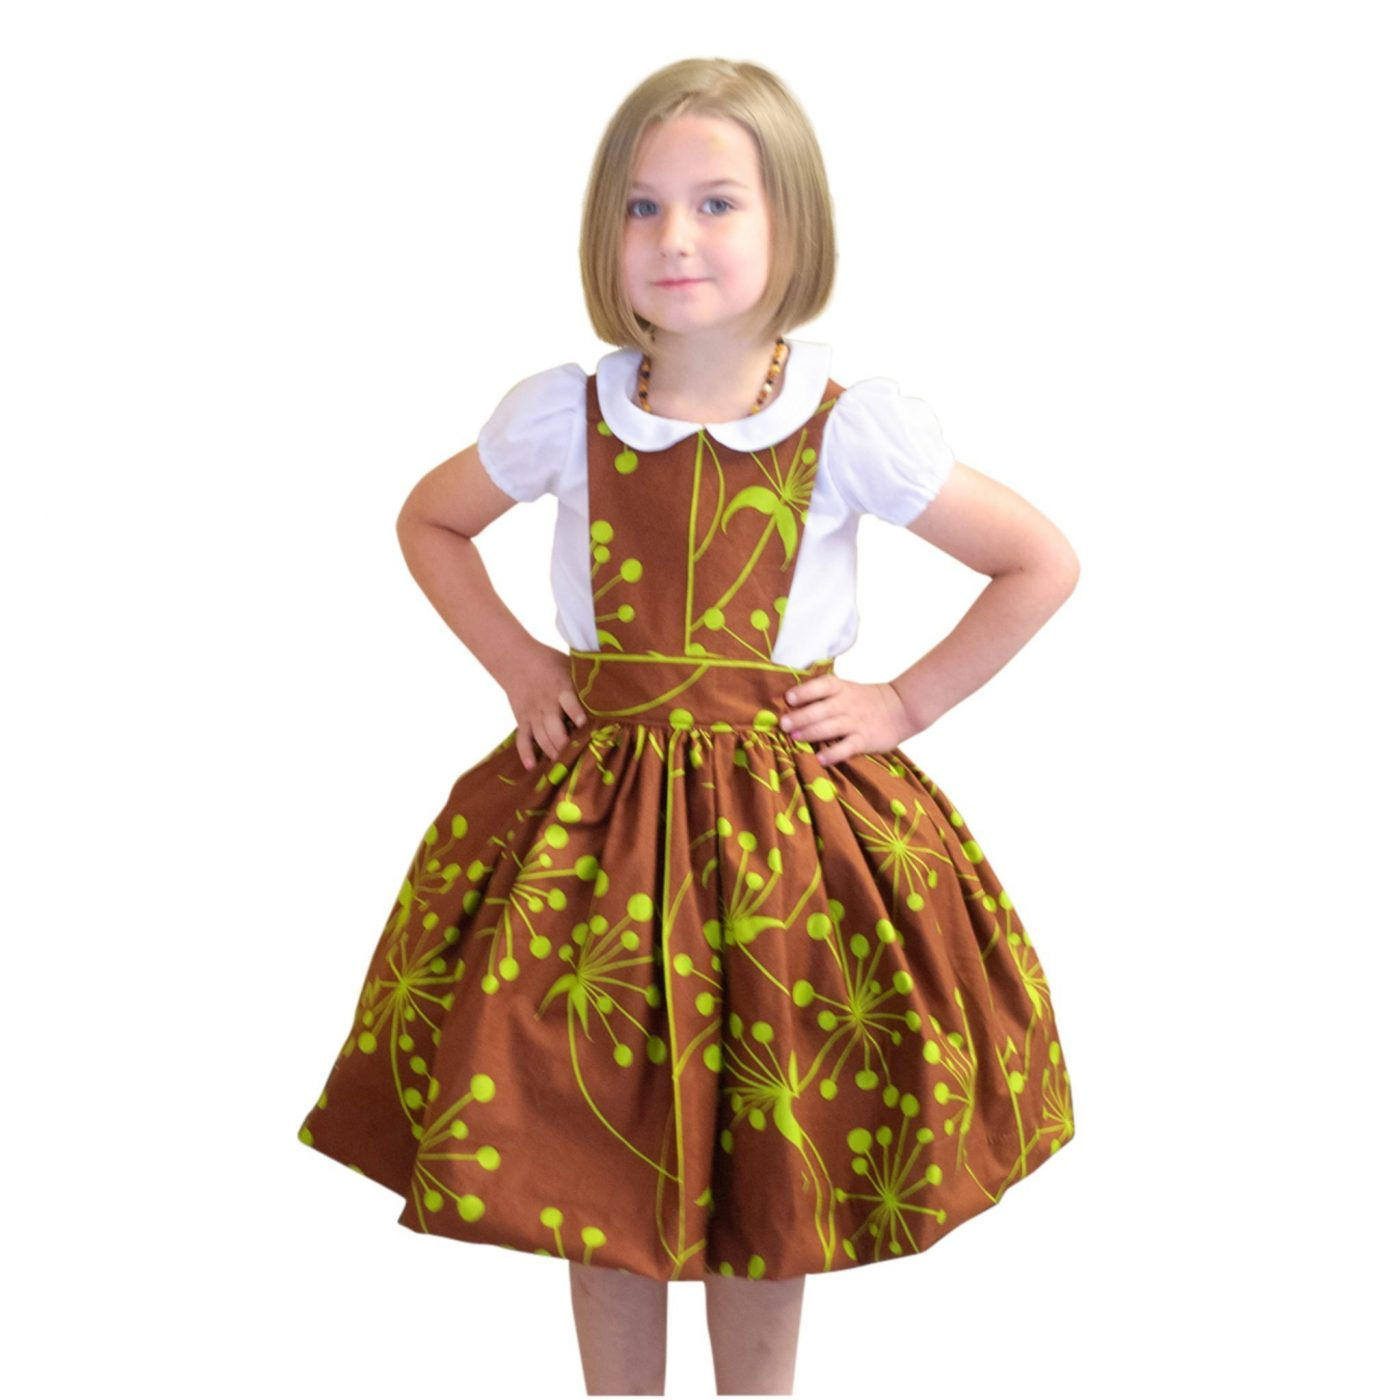 The Kinderschurze PDF Sewing Pattern